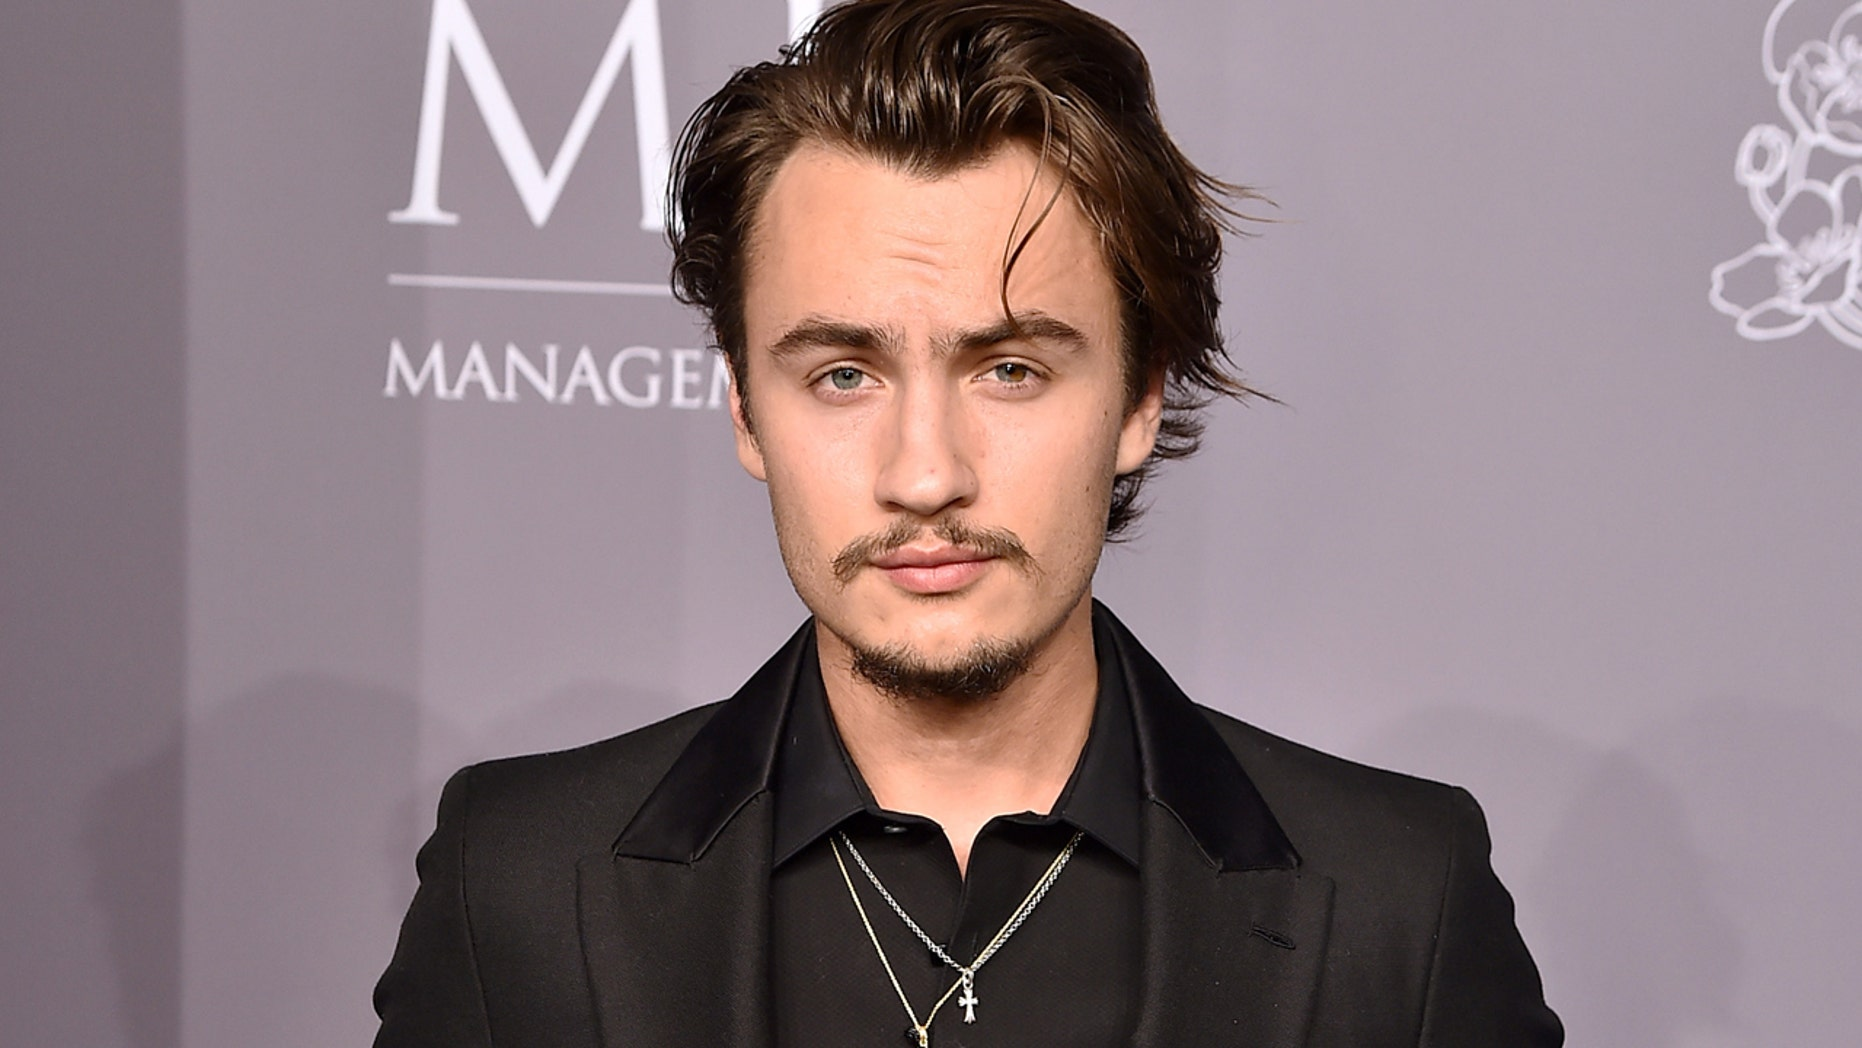 Tommy Lee and Pamela Anderson's son, Brandon, will join 'The Hills' reboot.